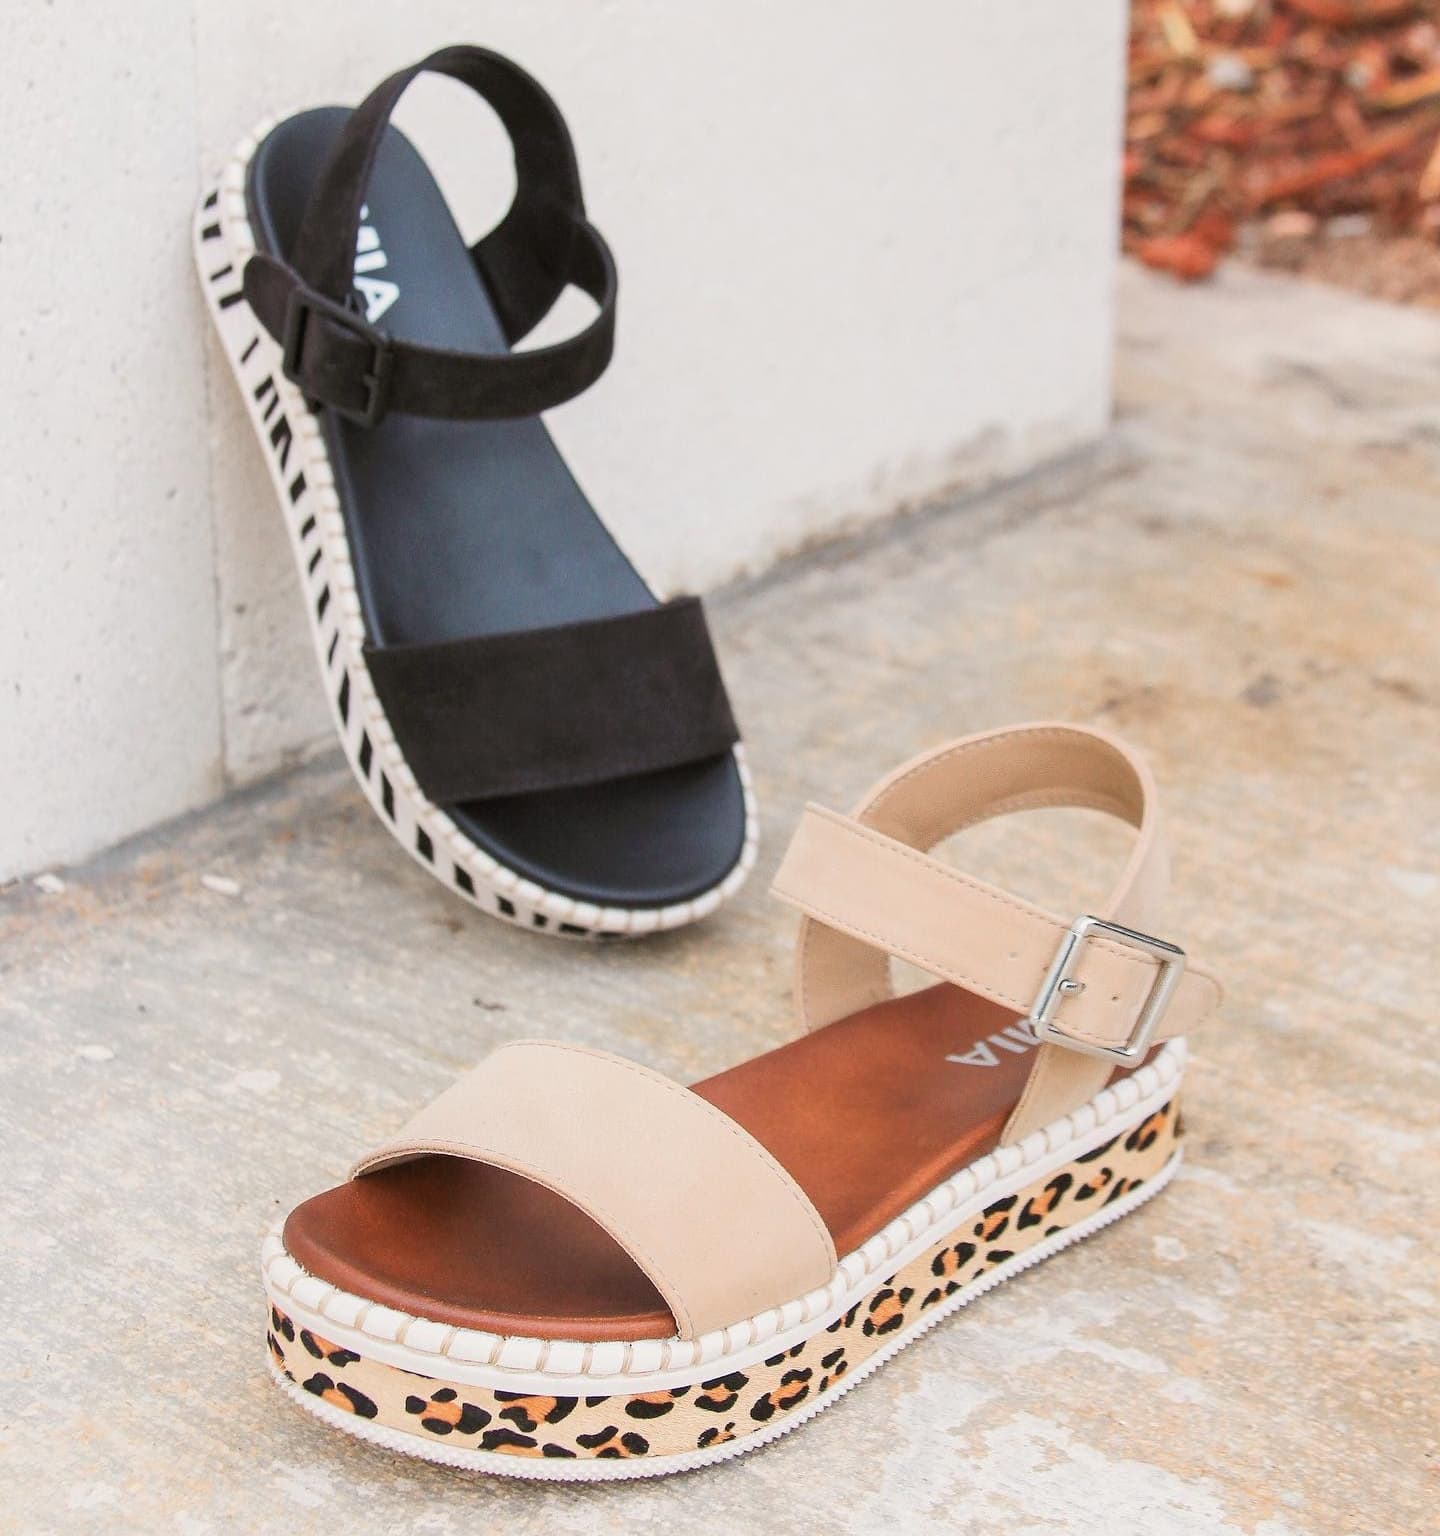 This espadrille-style sandal from MIA features an adjustable ankle strap, an over-the-toes strap, and a comfortable footbed